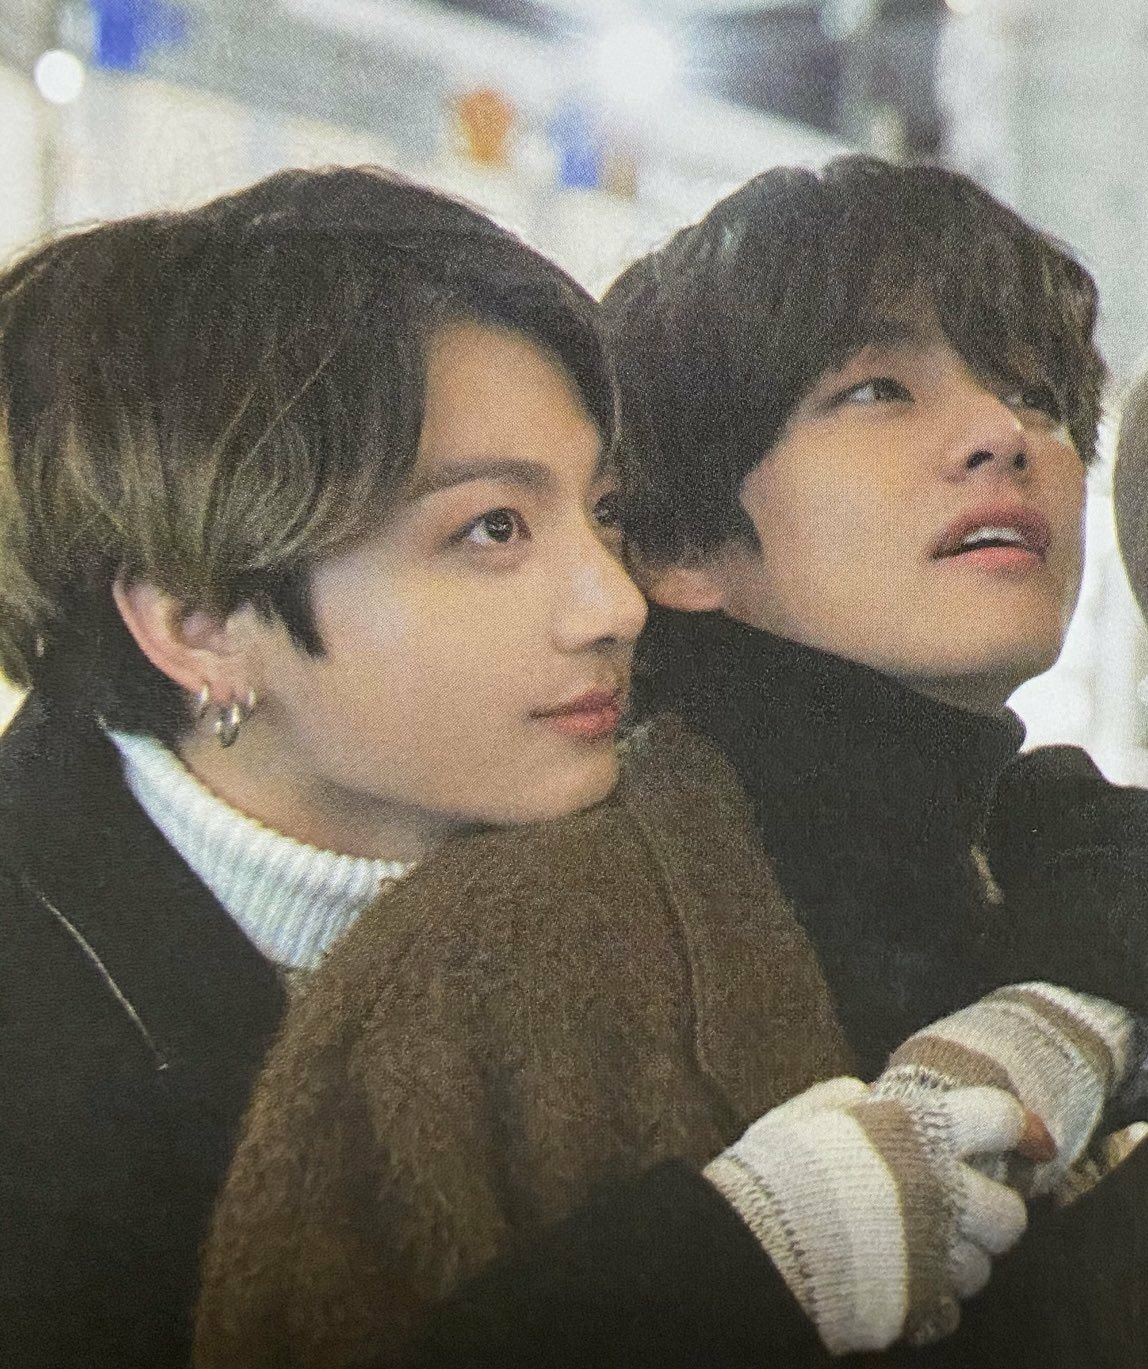 Pin by Rina on honestly idk anymore | Taekook, Bts